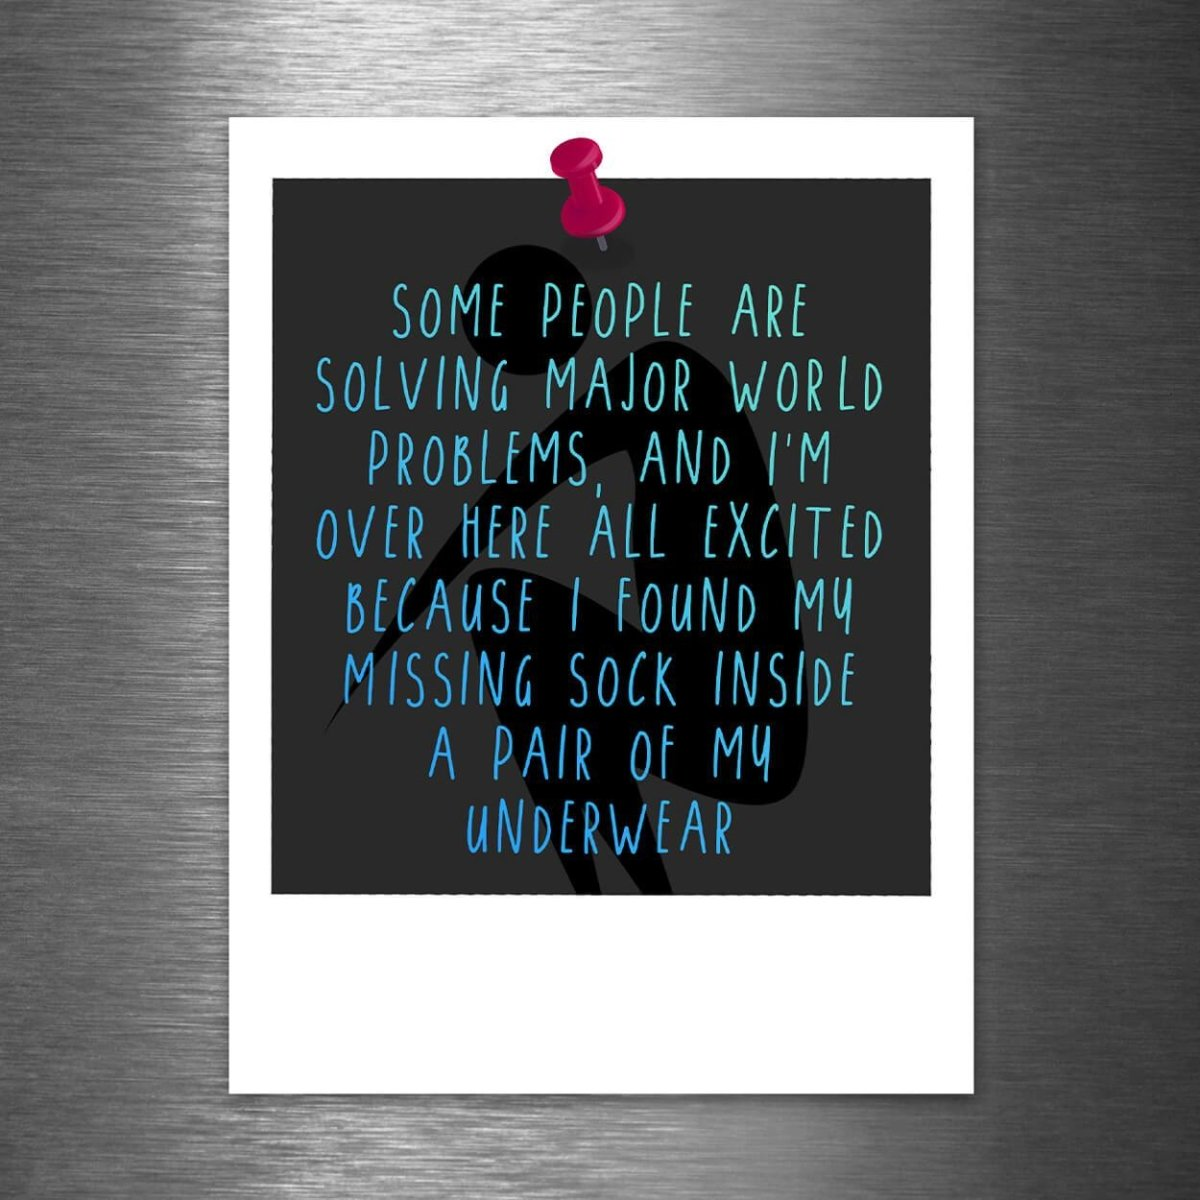 Some People Are Solving Major World Problems, and I'm Over Here Like... - Vinyl Sticker - Dan Pearce Sticker Shop